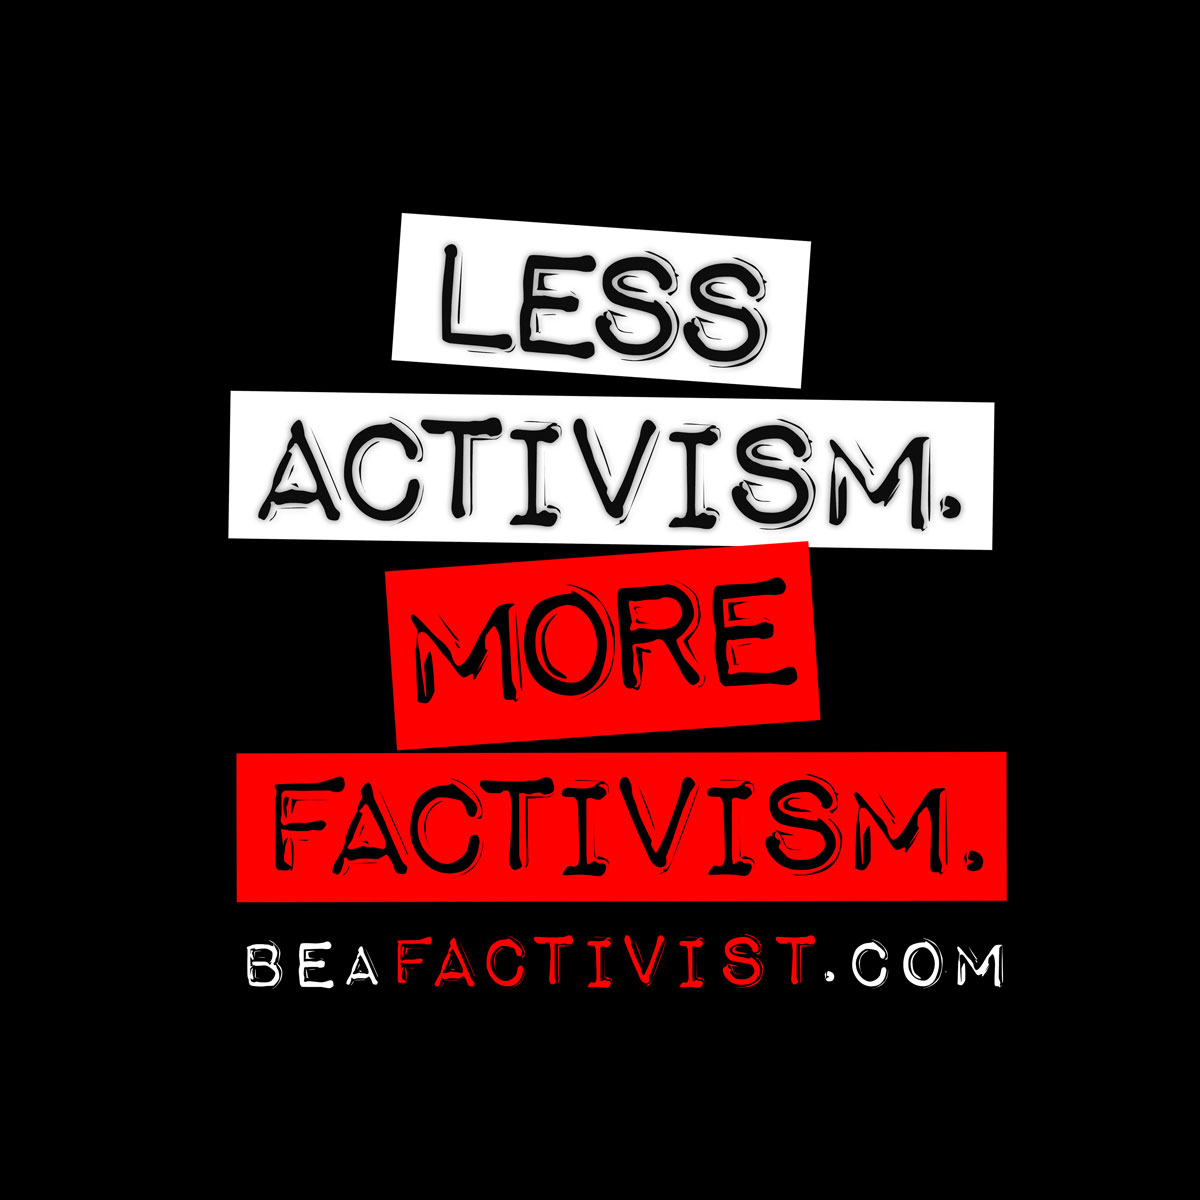 """Less Activism. More Factivism."" by The Radiance Foundation"